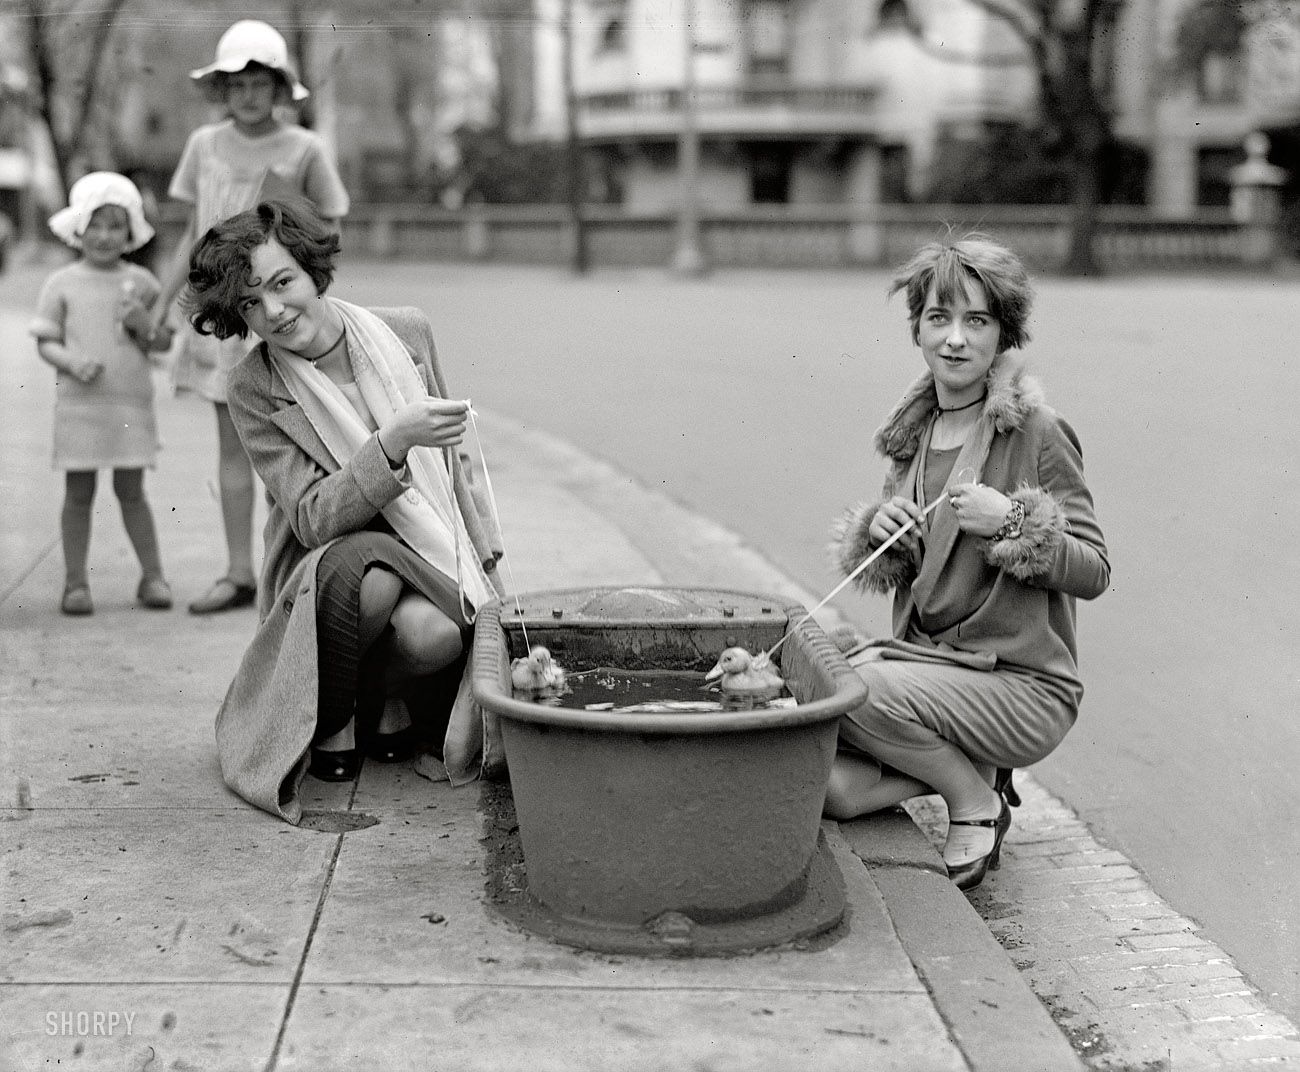 Shorpy Historic Picture Archive :: Lucky Ducks: 1927 high-resolution photo